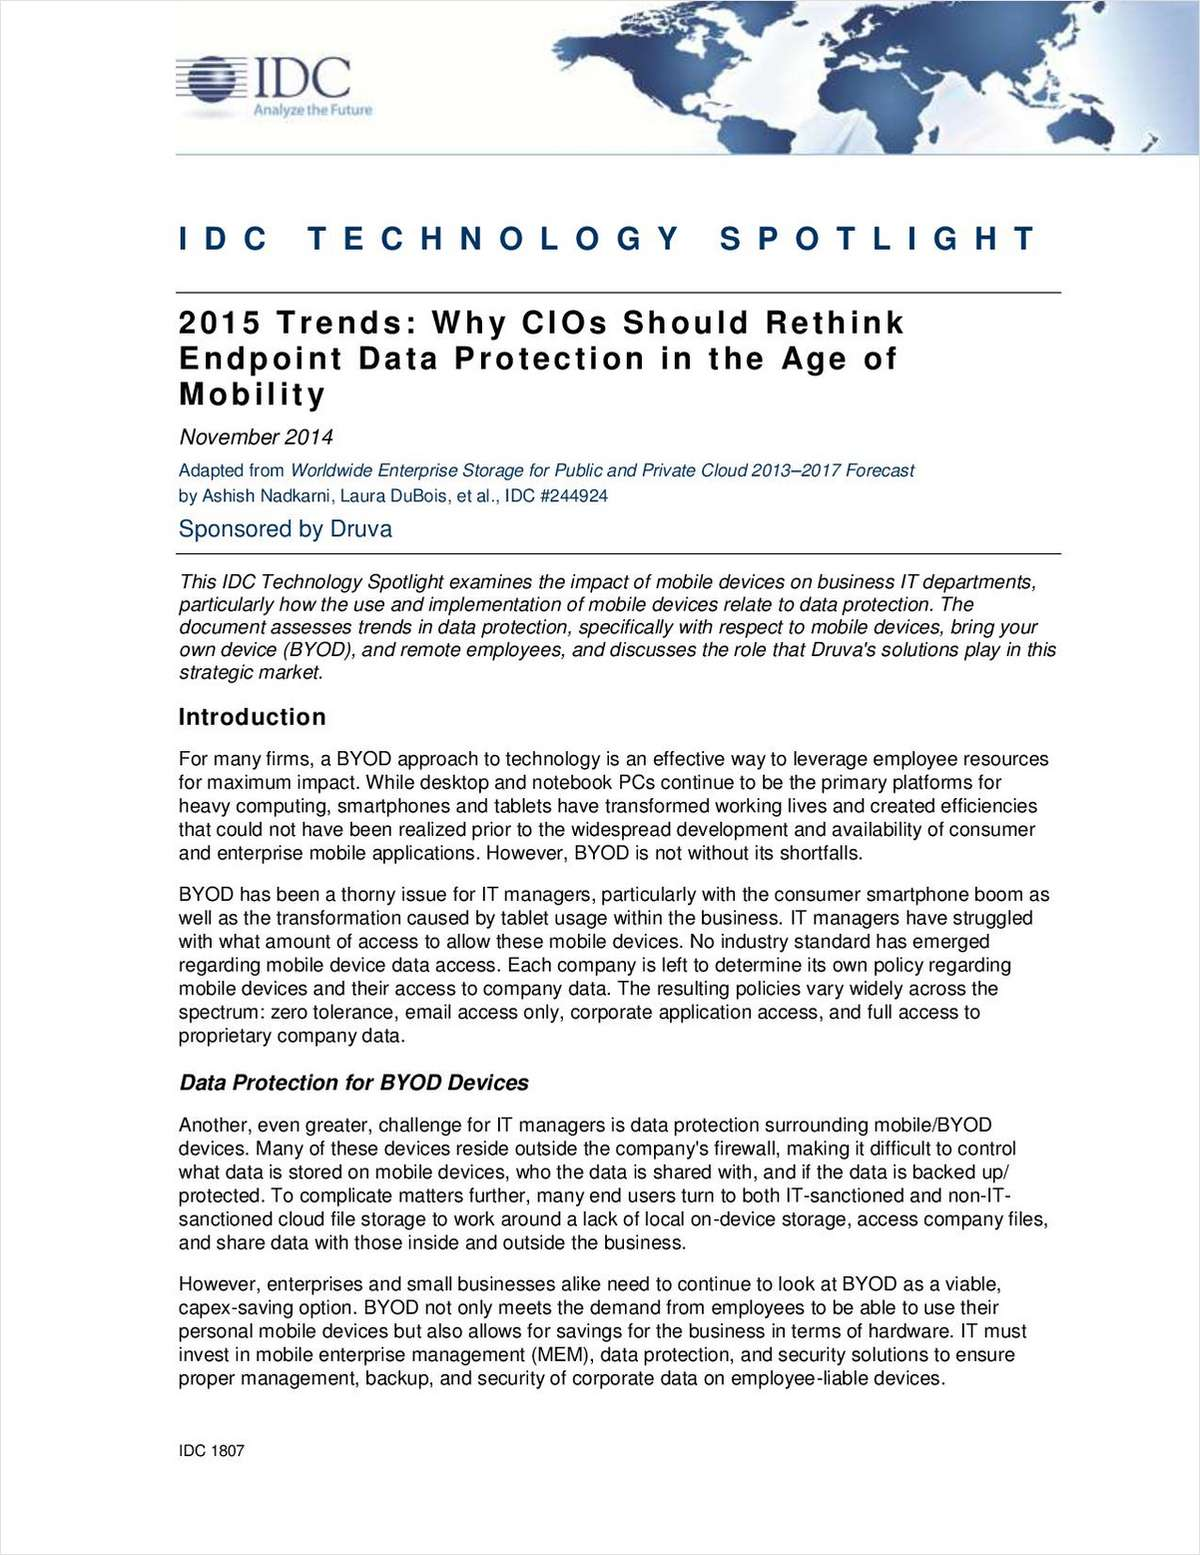 IDC 2015 Trends: Why CIOs Should Rethink Endpoint Data Protection in the Age of Mobility